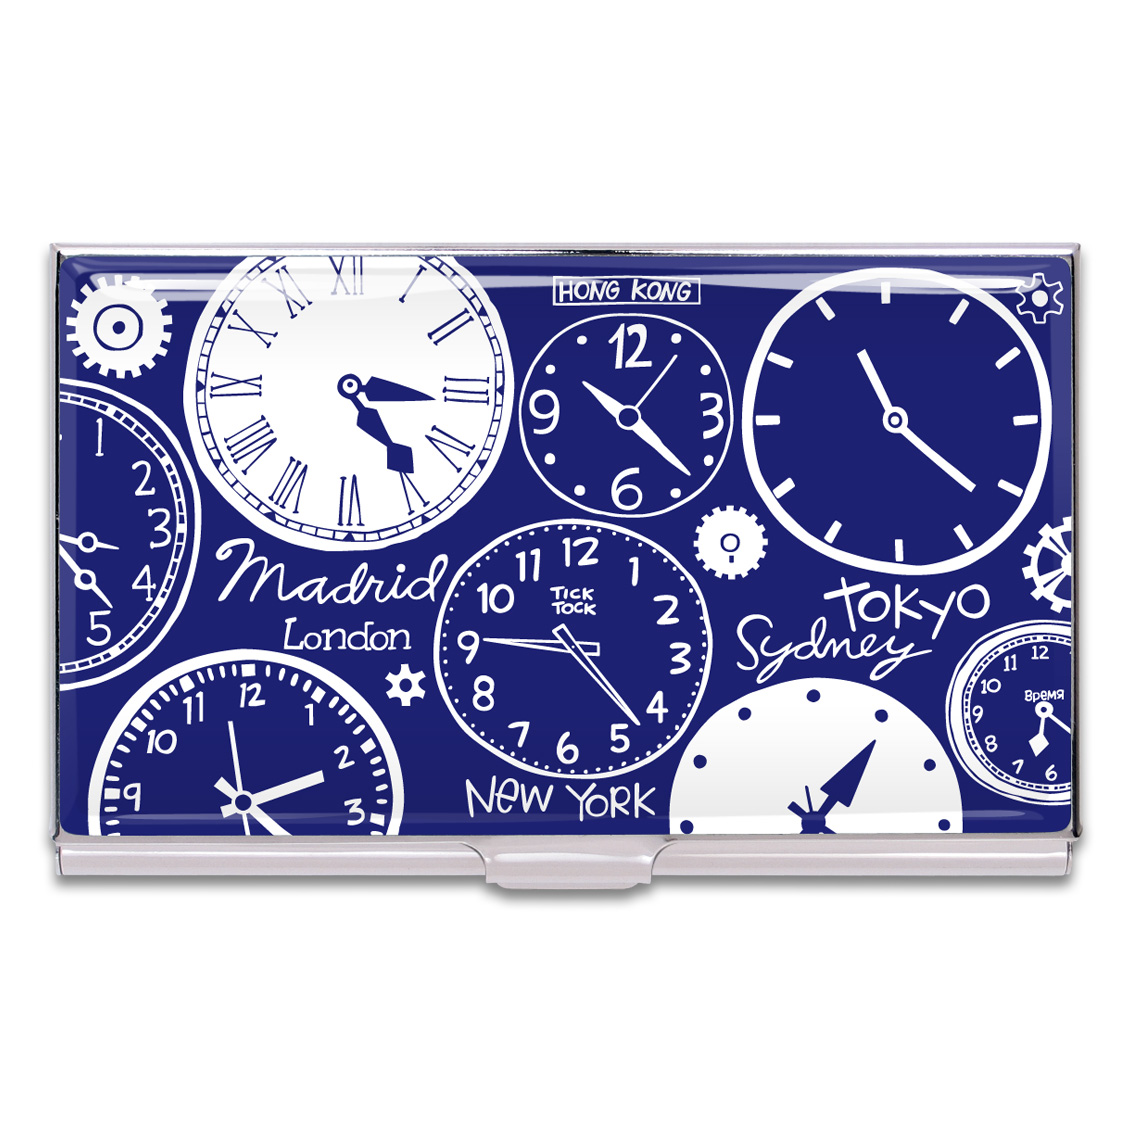 Shop CLOCKS Business Card Case by Nancy Wolff (#CNW05BC) on ACME Studio